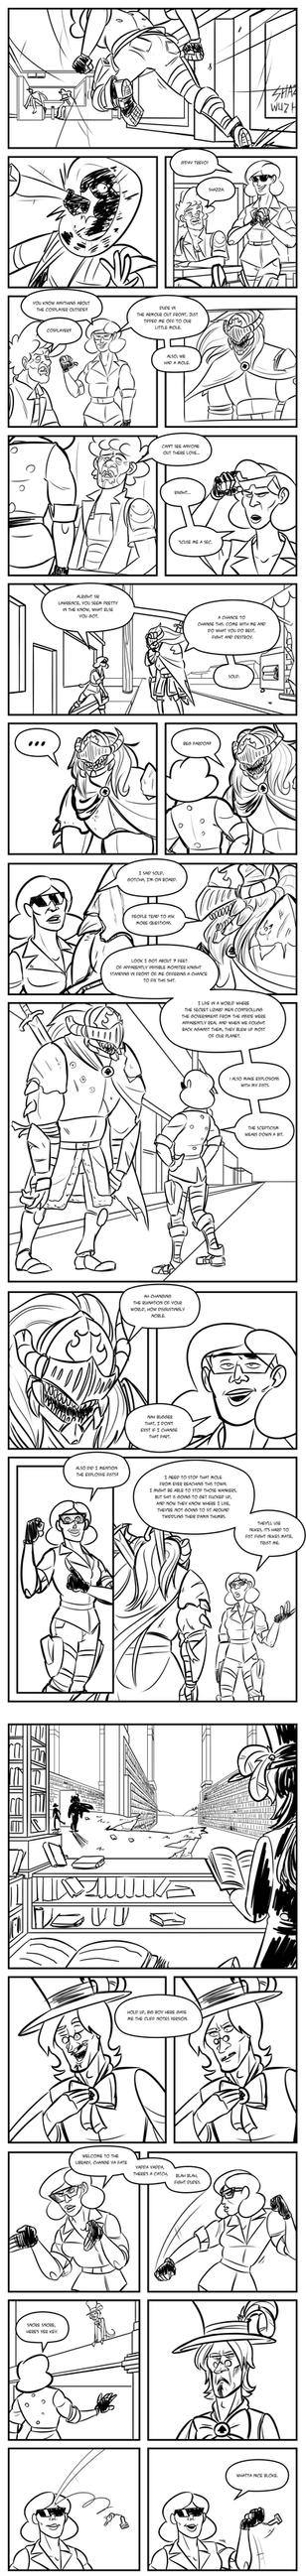 Second Draft OCT - Audition - Page 3 by Angry-Langman